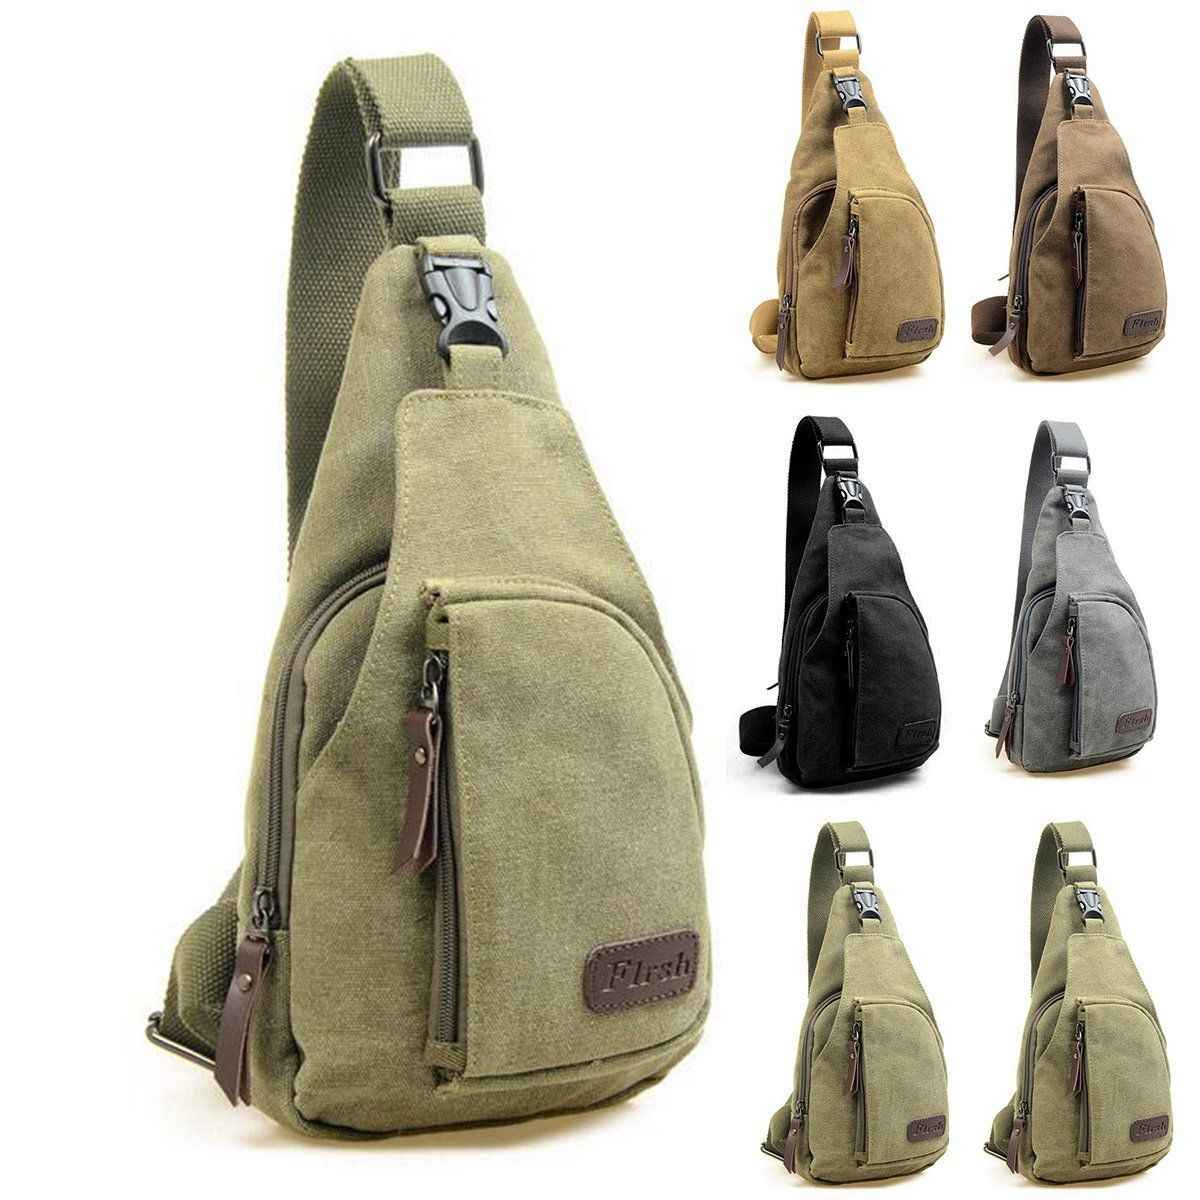 2018 Brand New Men Vintage Canvas Leather Satchel Shoulder Sling Chest Pack Bag